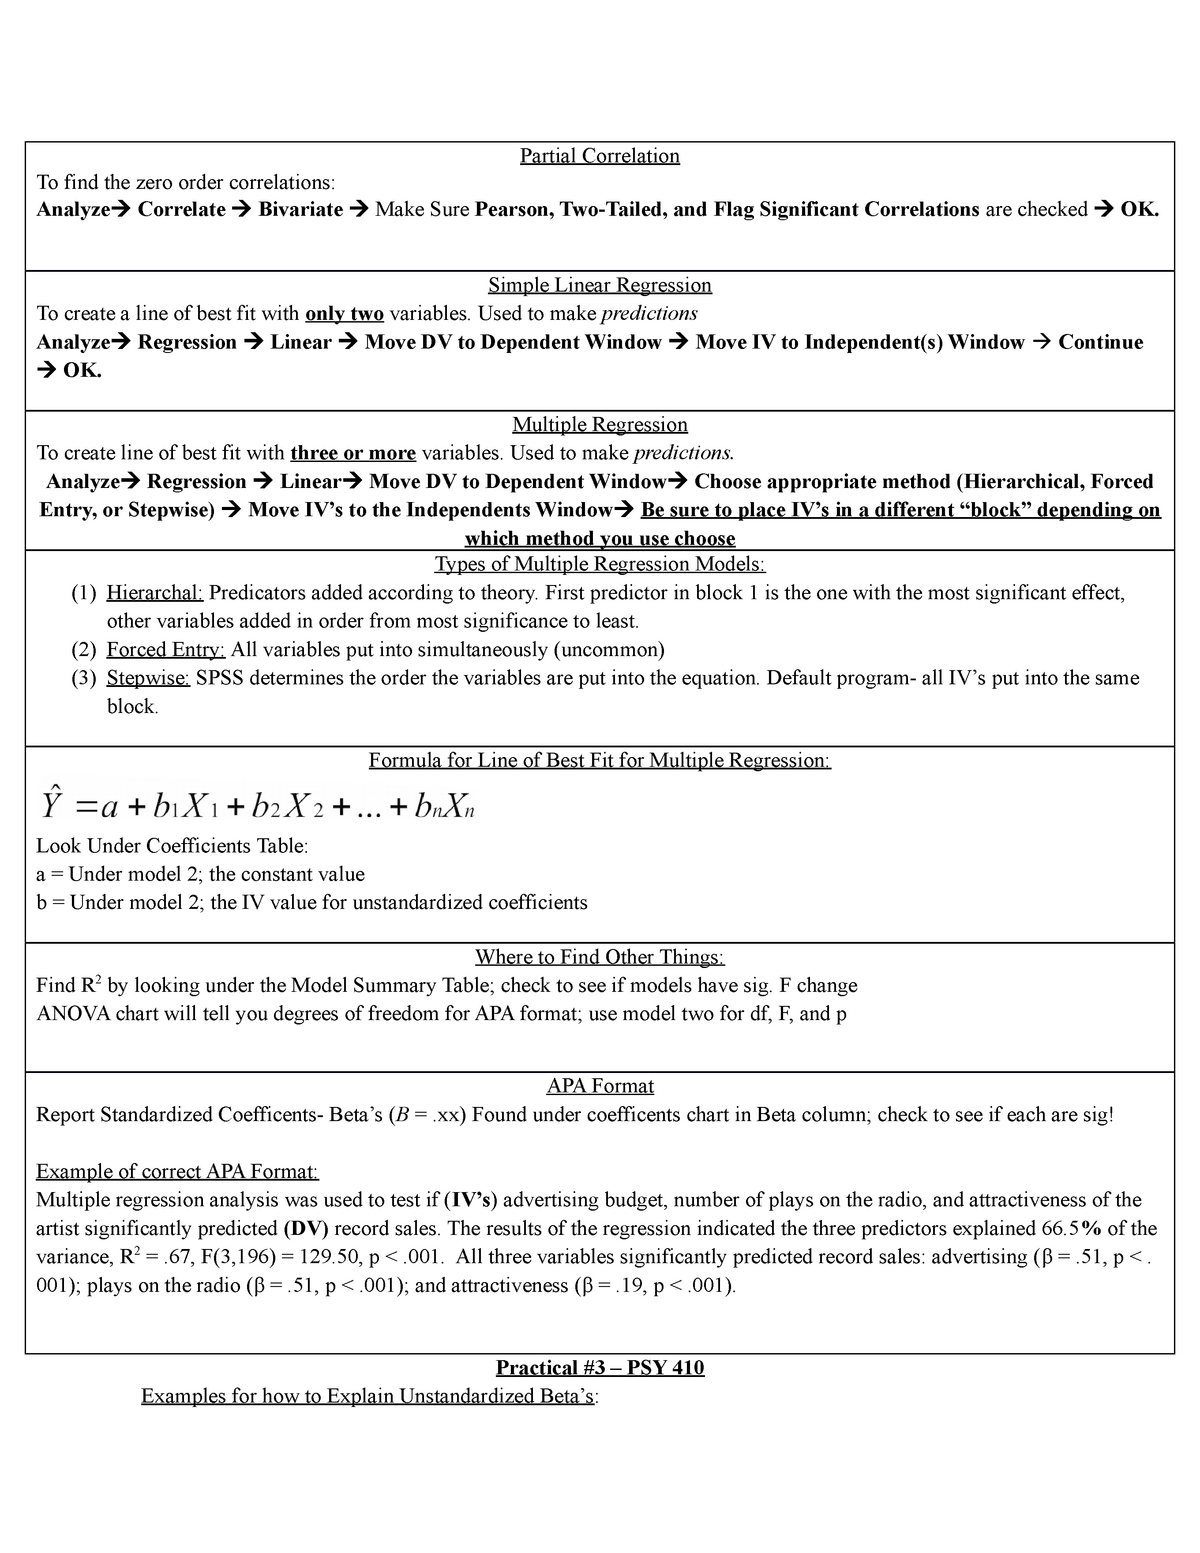 Cheat Sheet notes for Practical 3 - PSY 410: Intermediate